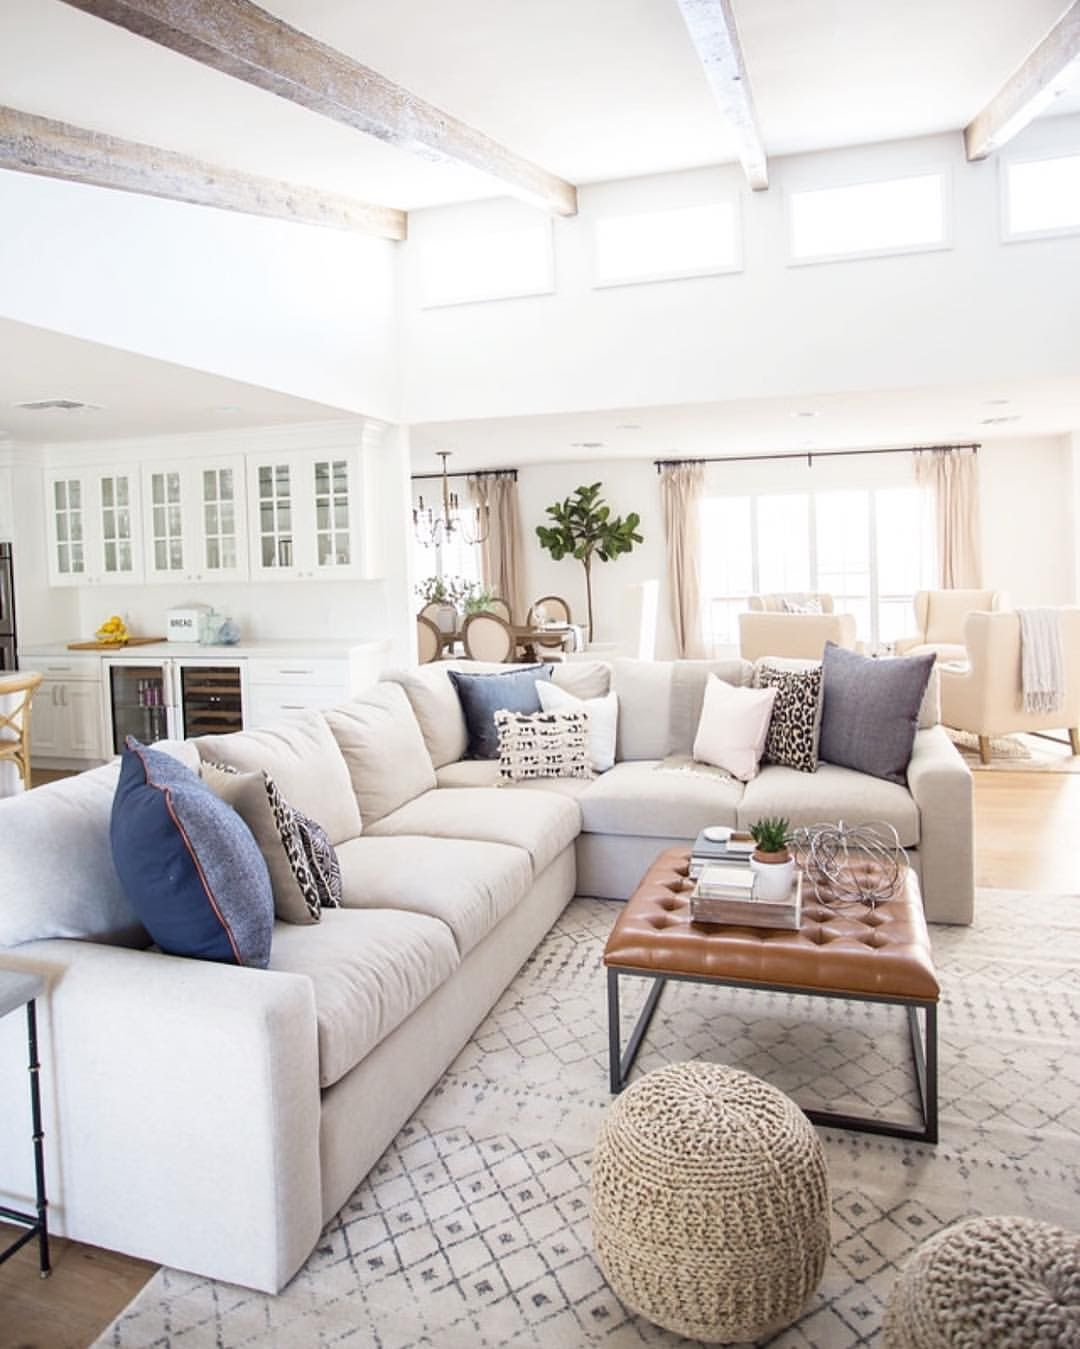 I Like The Neutral Look With Pops Of Color